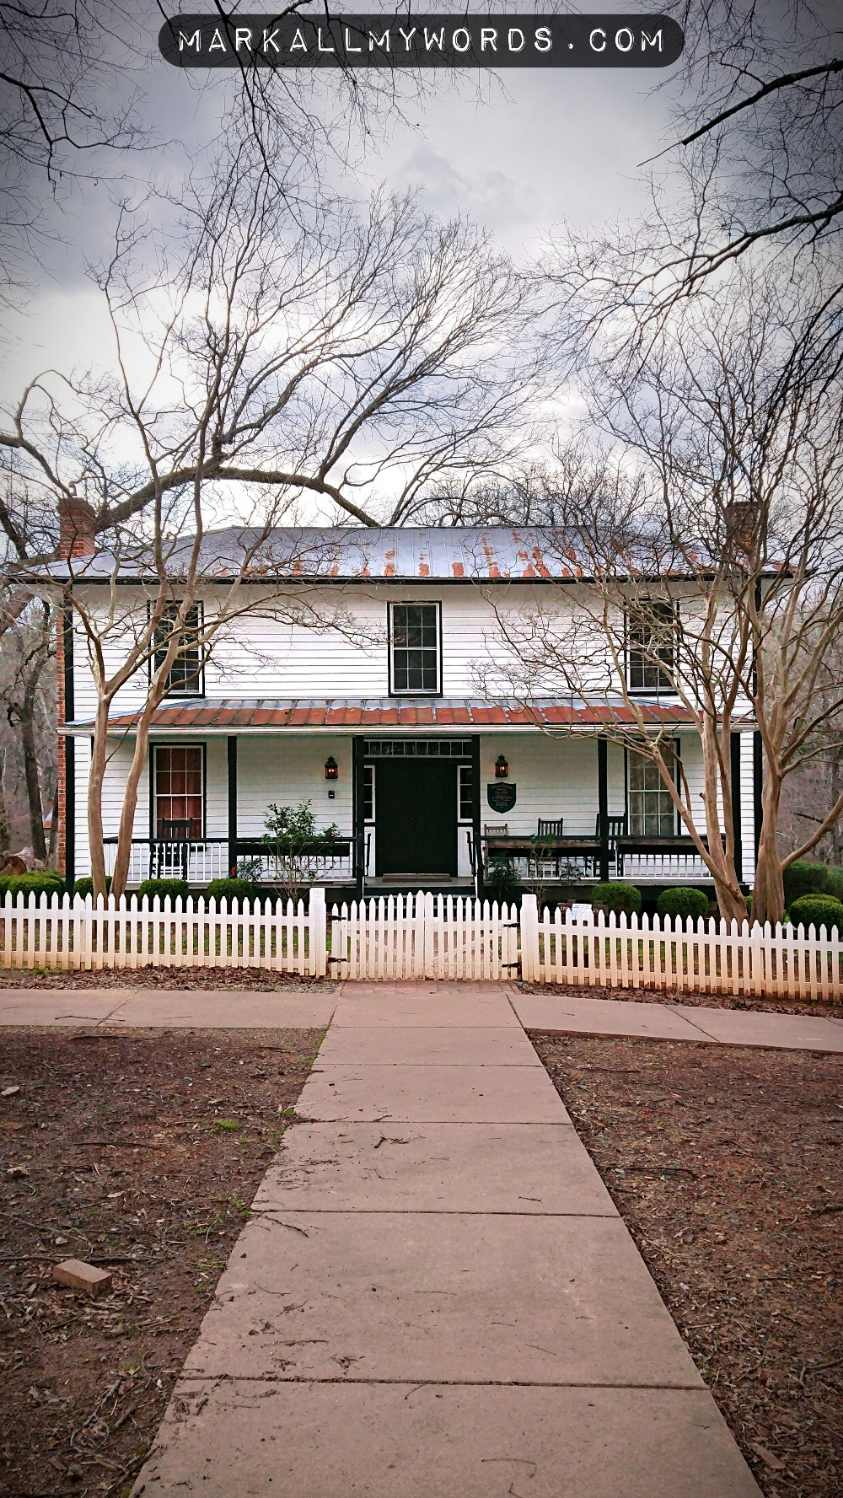 McCown-Mangum House, with sidewalk and picket fence